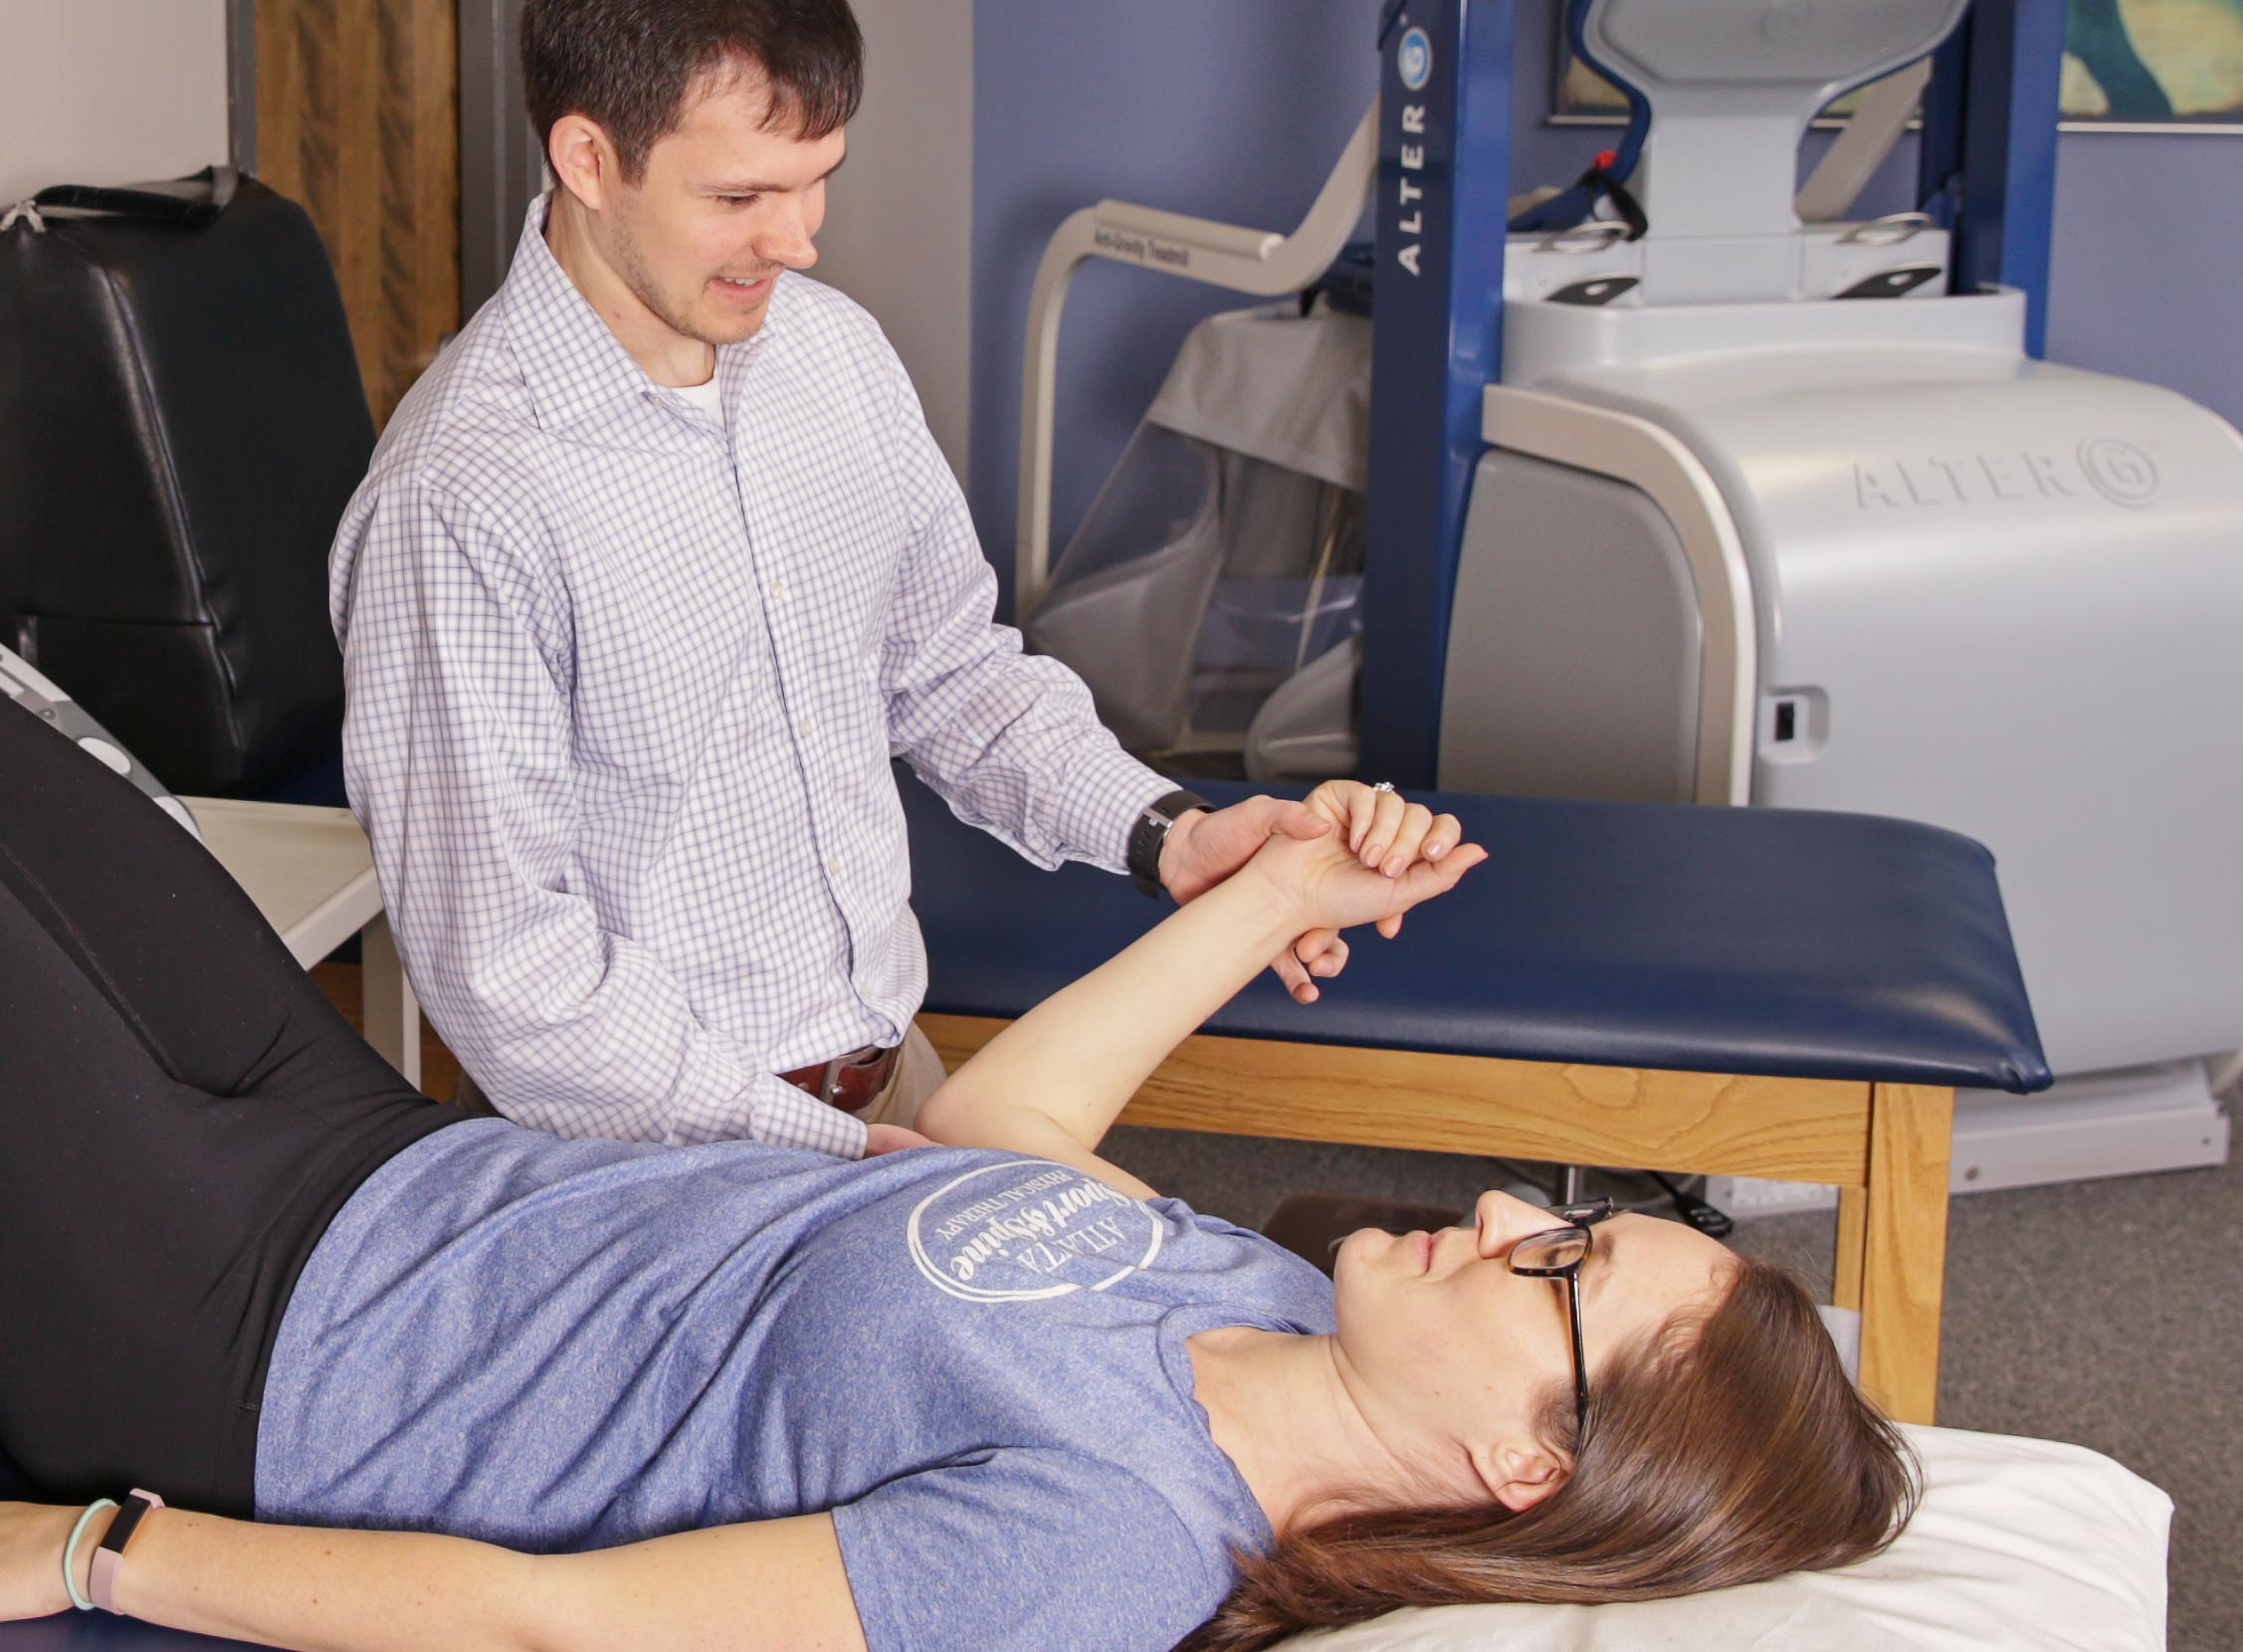 We specialize in customized physical therapy